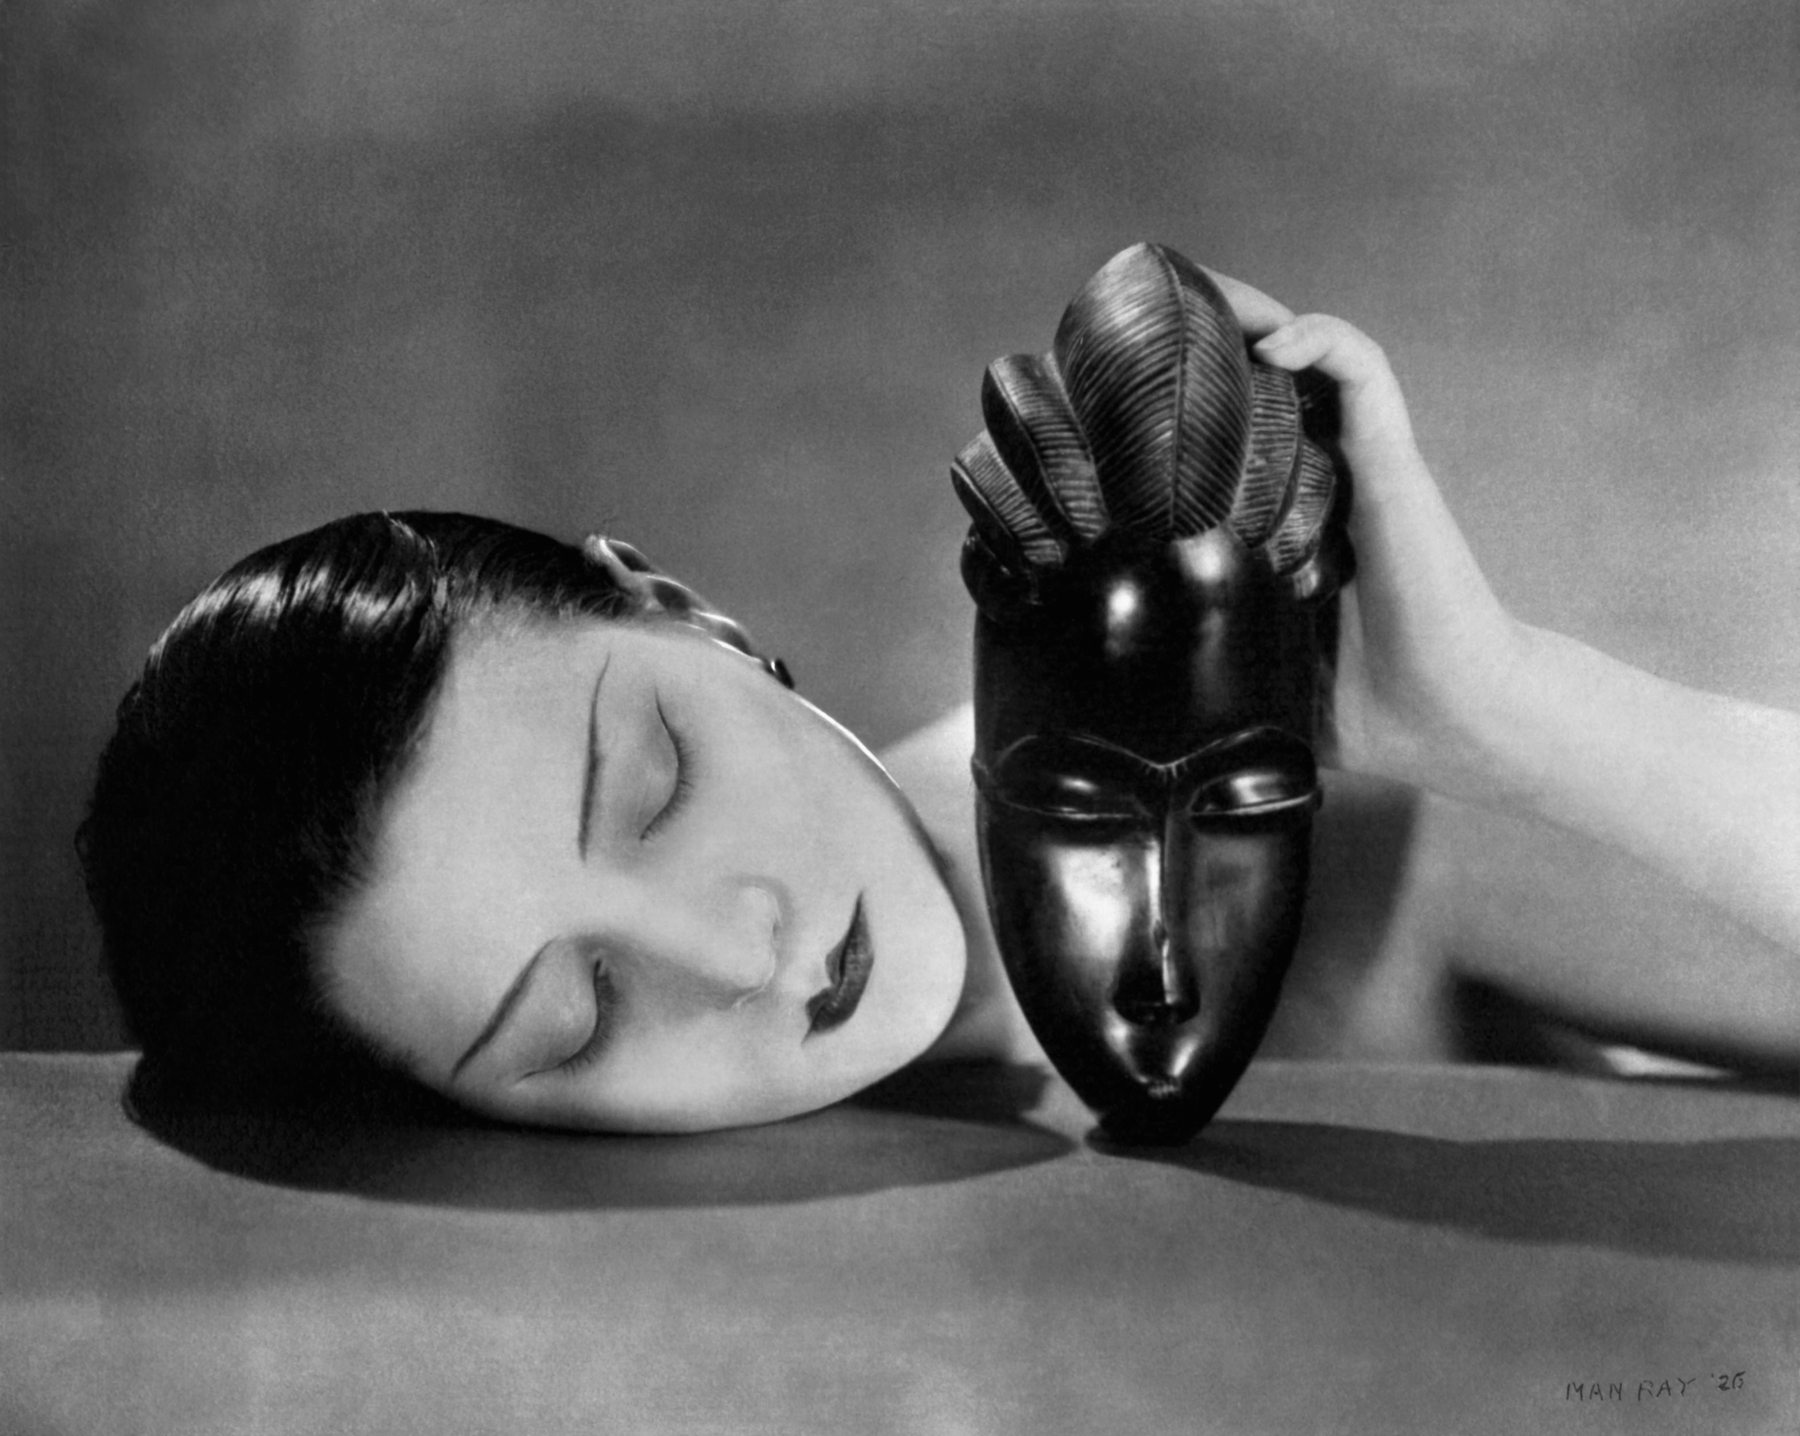 Fotó: Noire and Blanche, 1926 © Man Ray